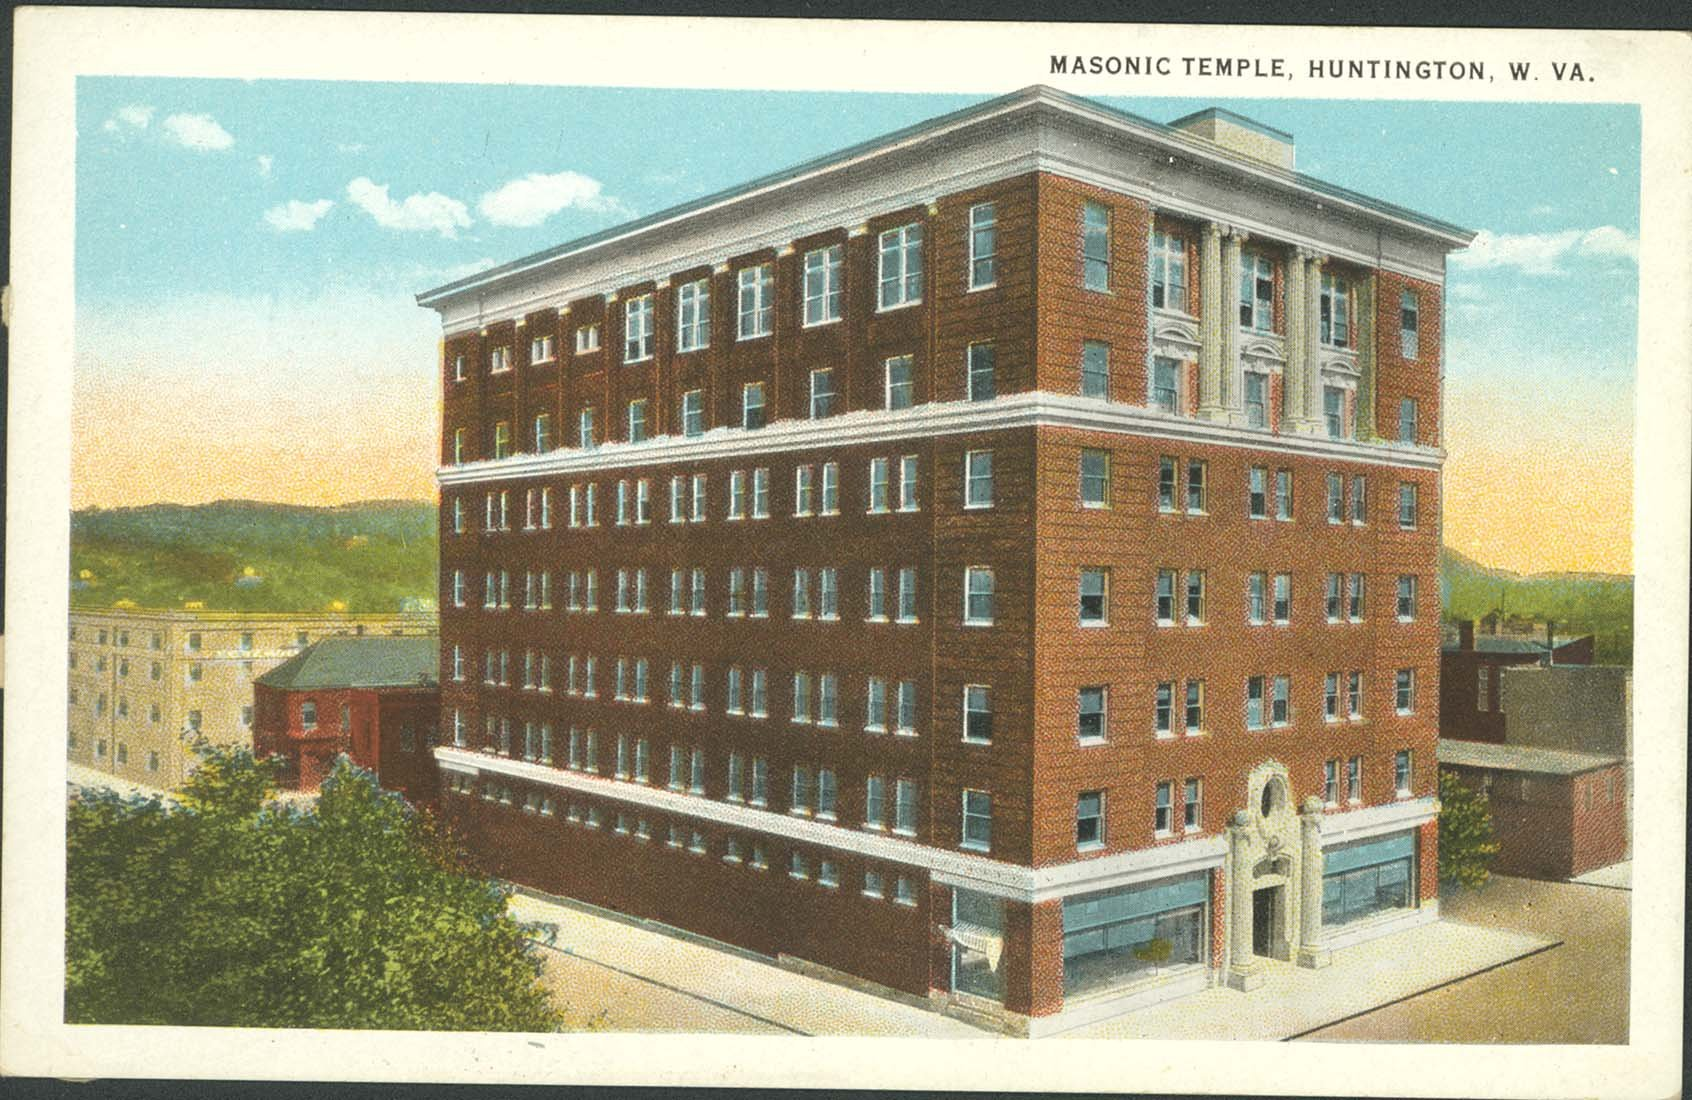 This early postcard of the Masonic Temple shows the building before the construction of the eastern half in 1922. Image courtesy of Marshall University Special Collections .